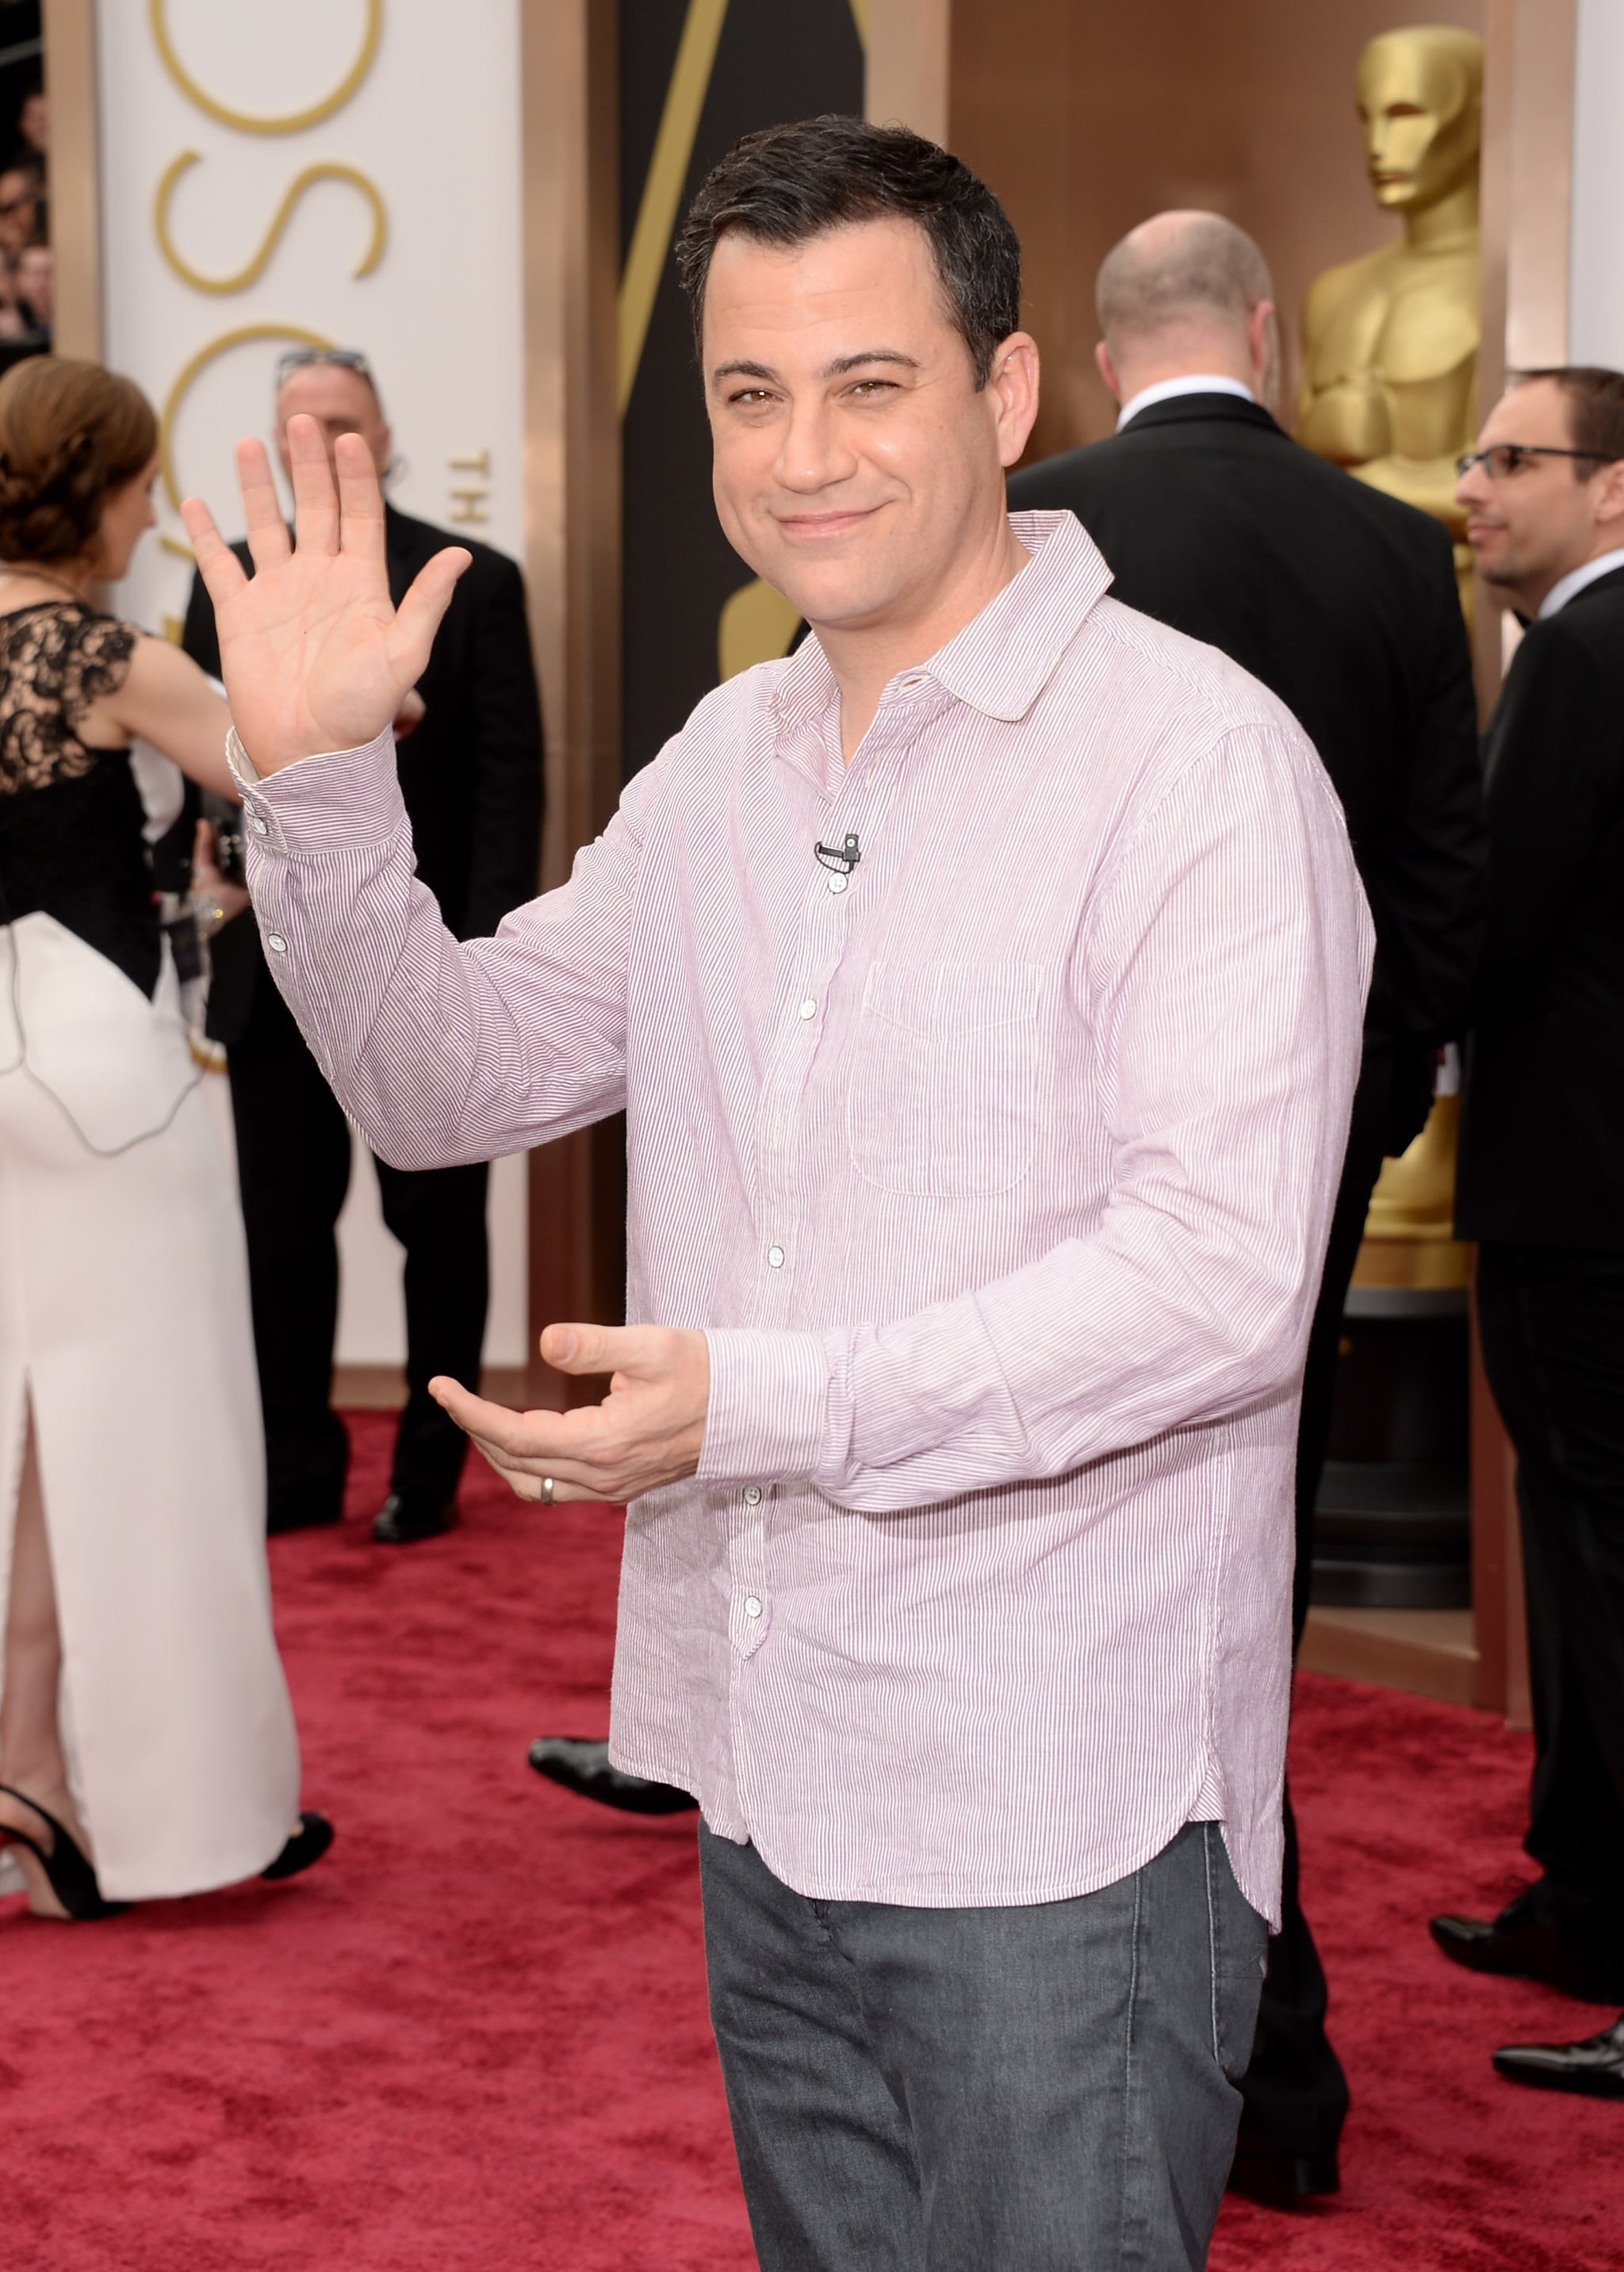 You Won't Believe What Jimmy Kimmel Wore to the Oscars